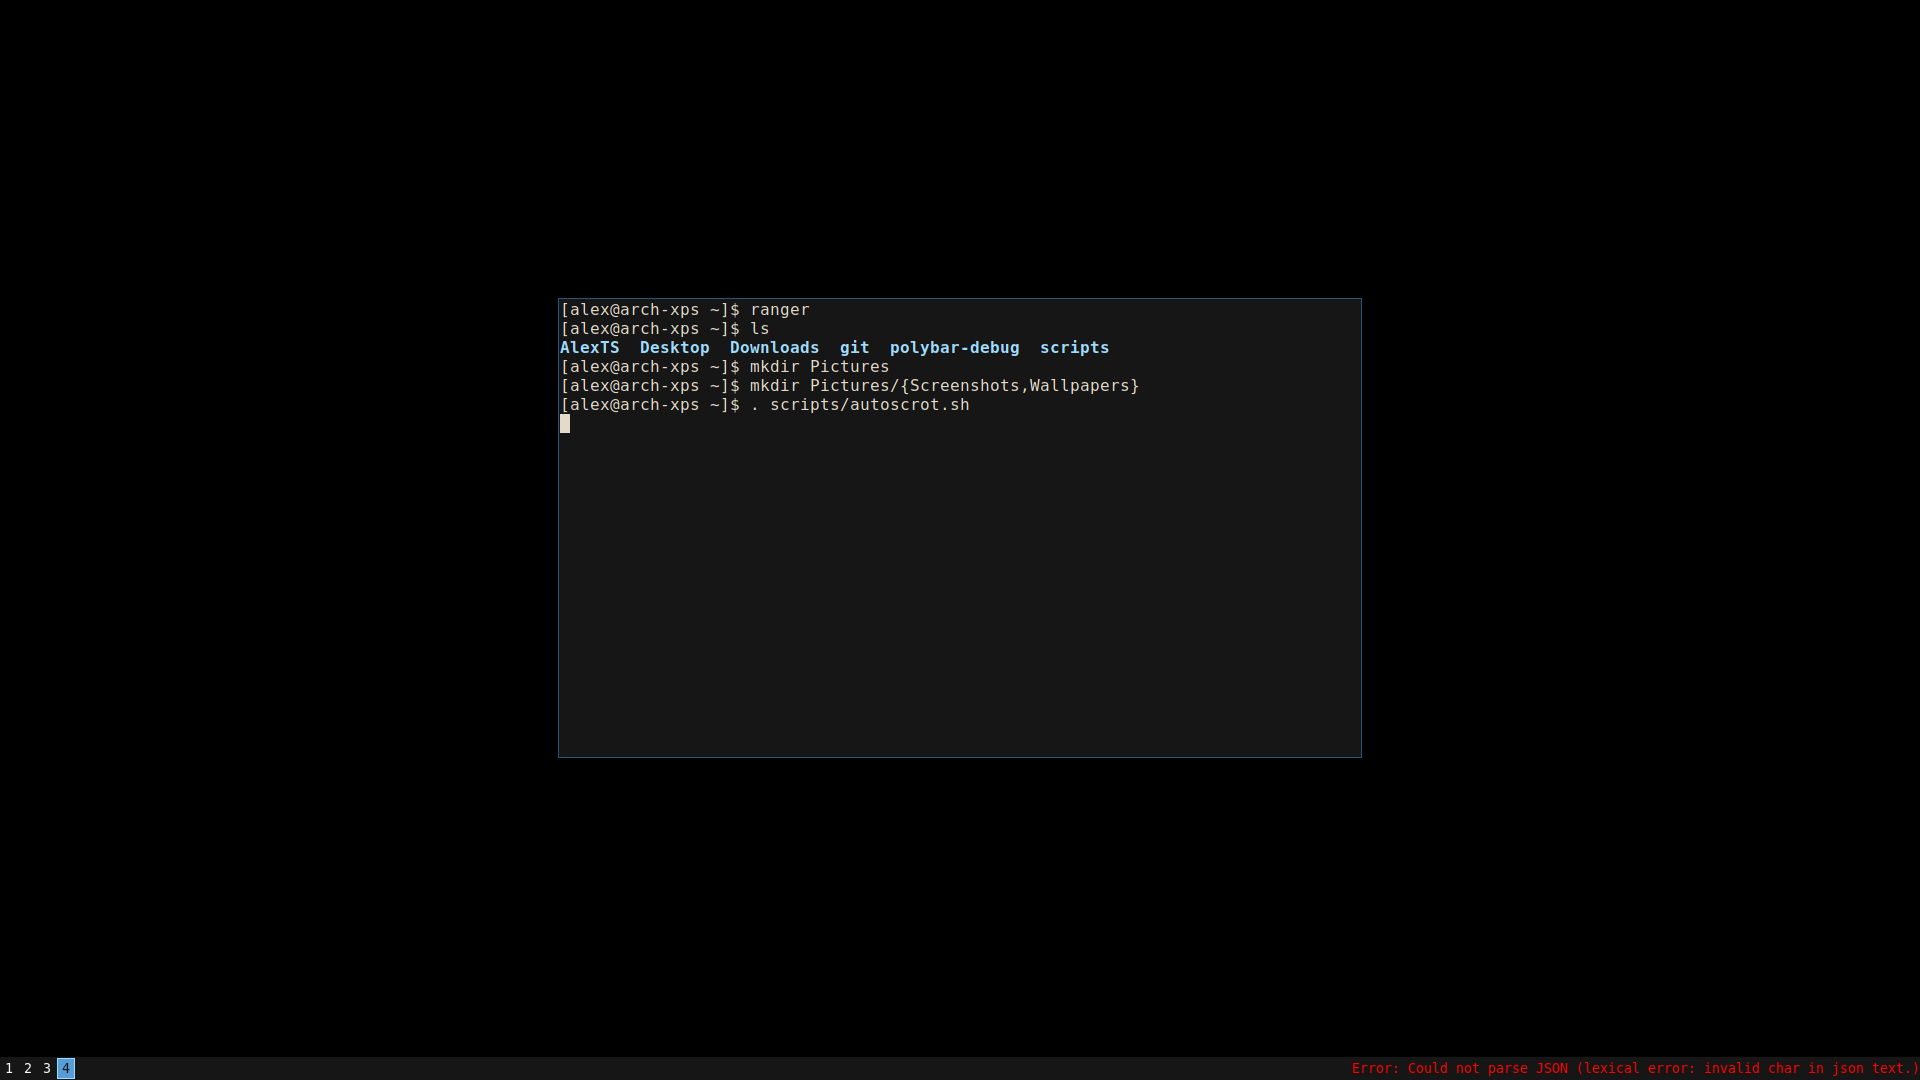 Bar fails to load: background_manager unable to get root